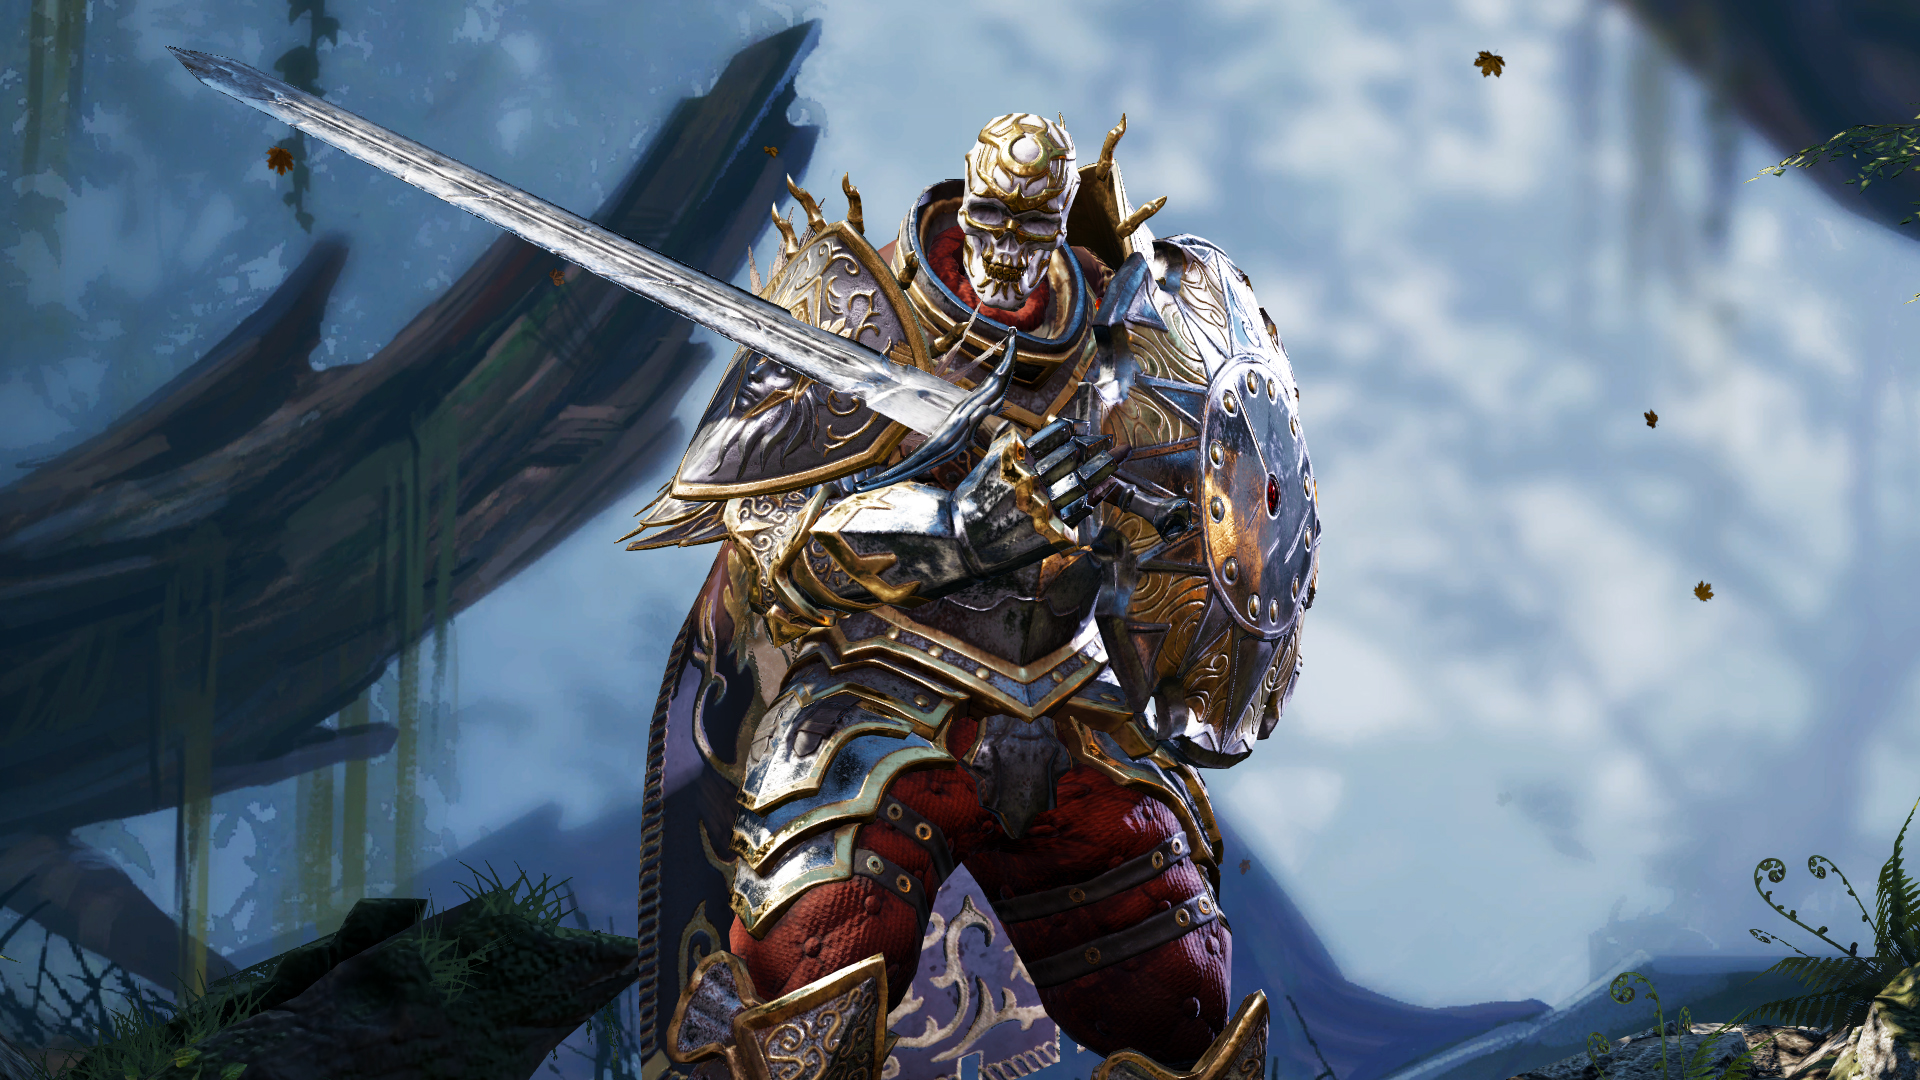 An armored, skeletal warrior holds a sword and shield